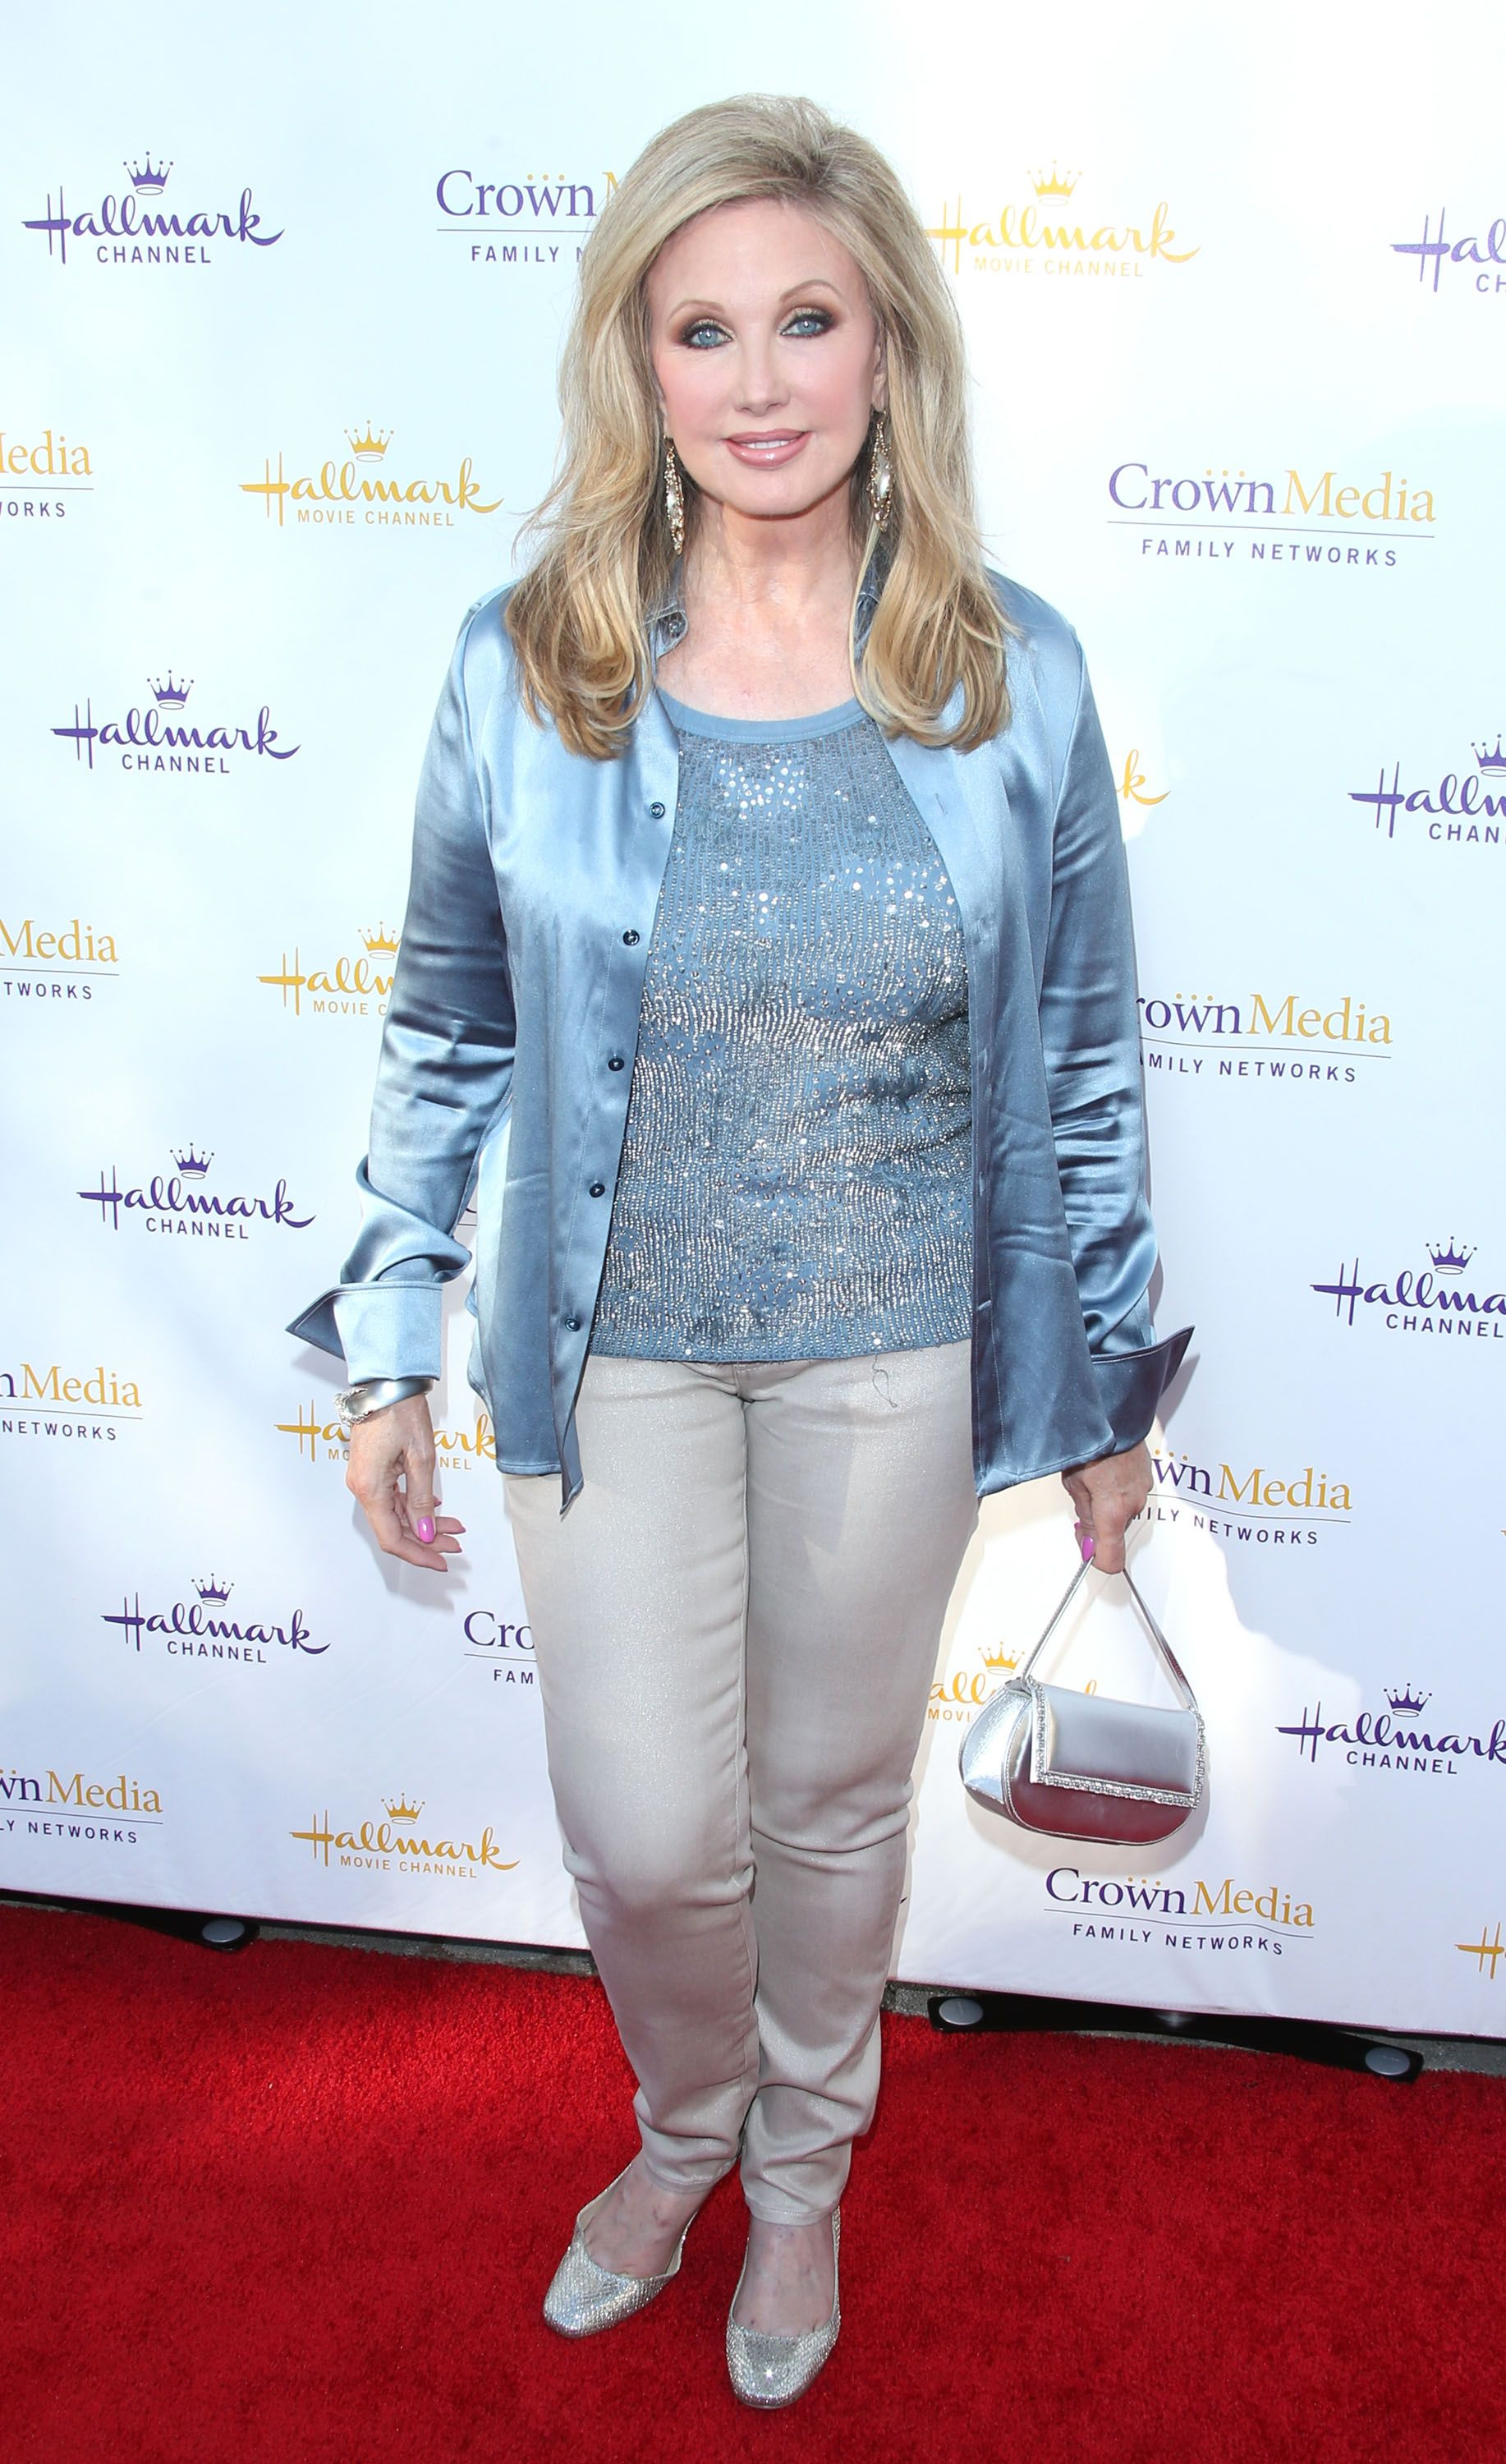 Morgan Fairchild attends the Hallmark Channel & Hallmark Movie Channel's 2014 Summer TCA Party on July 8, 2014 in Beverly Hills, California. | Source: Getty Images